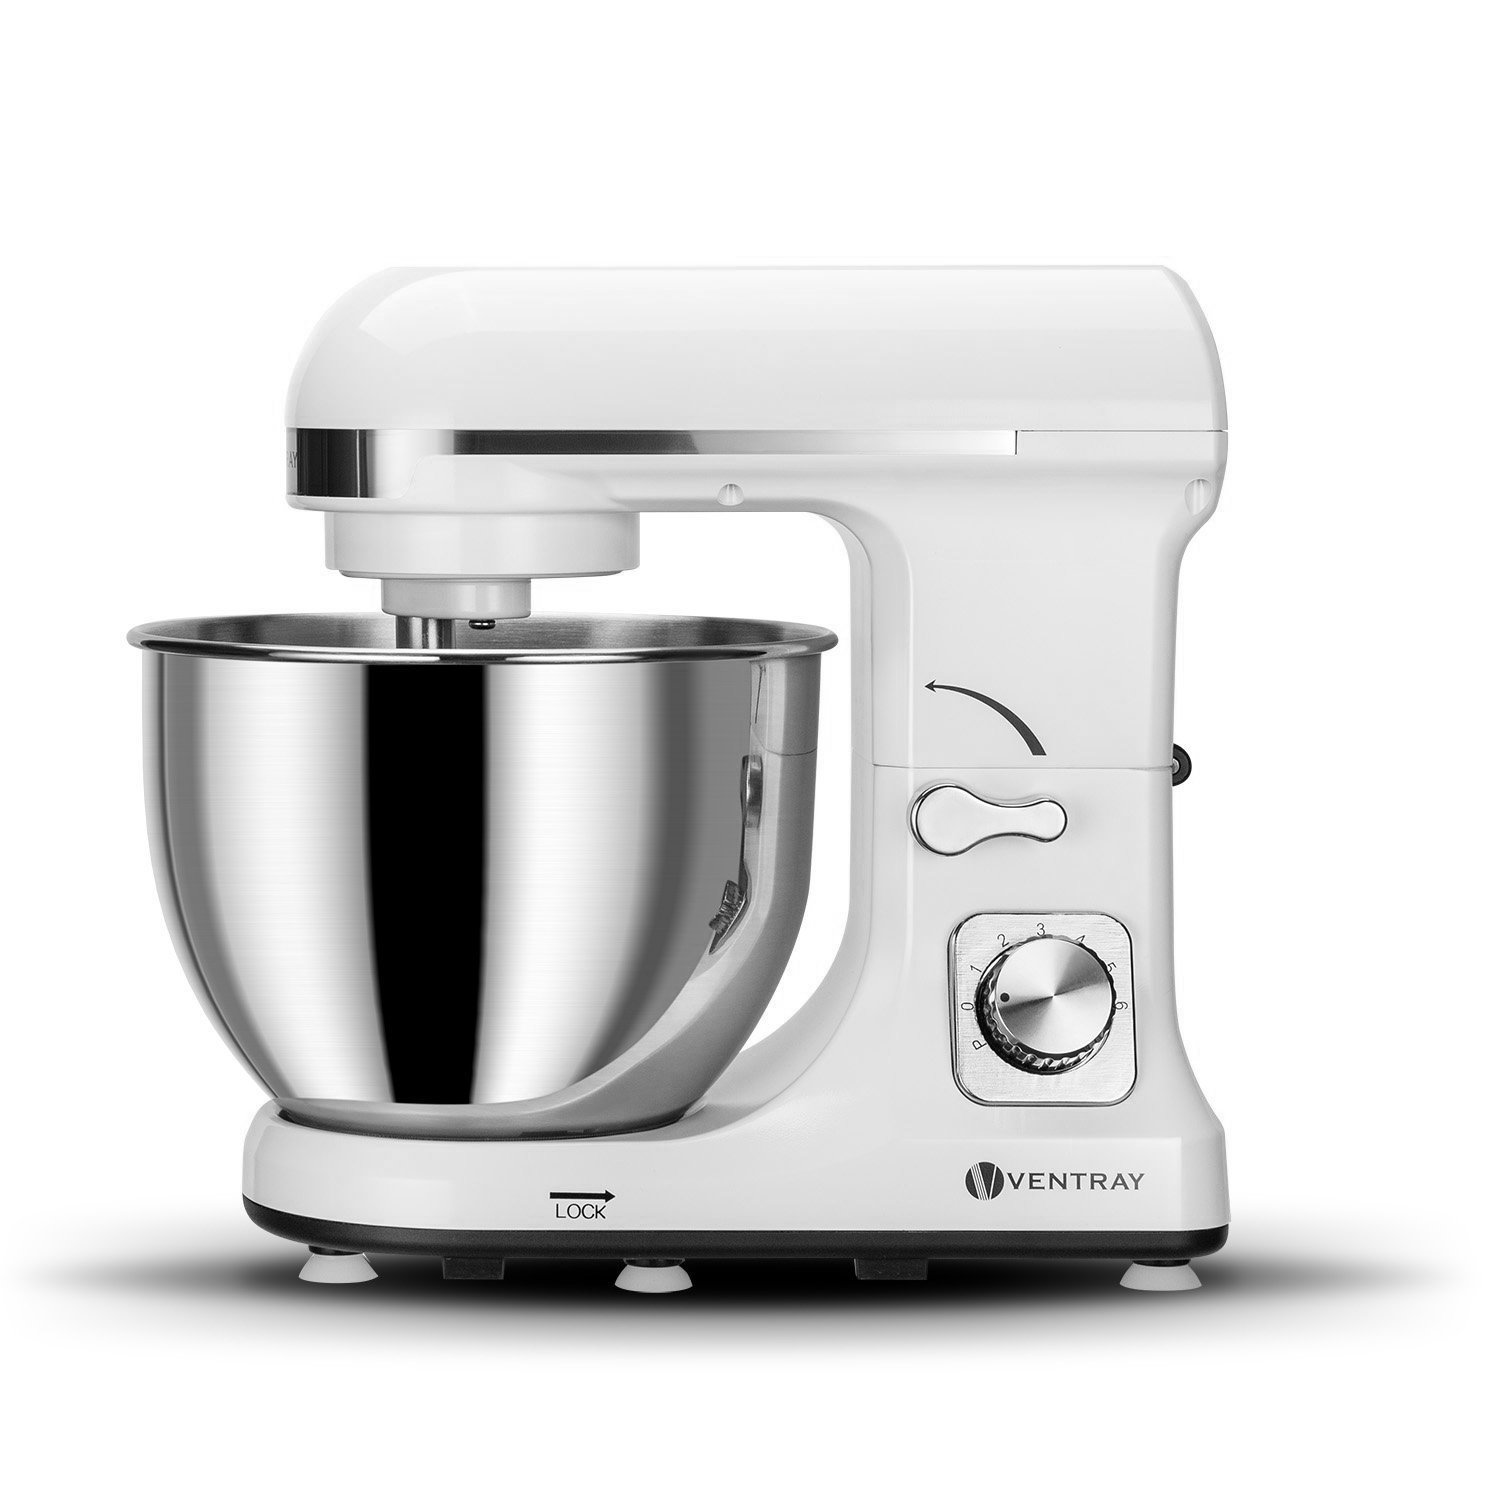 Ventray Stand Mixer 6-Speed 4.5-Quart Stainless Steel Bowl with Pouring Shield - White